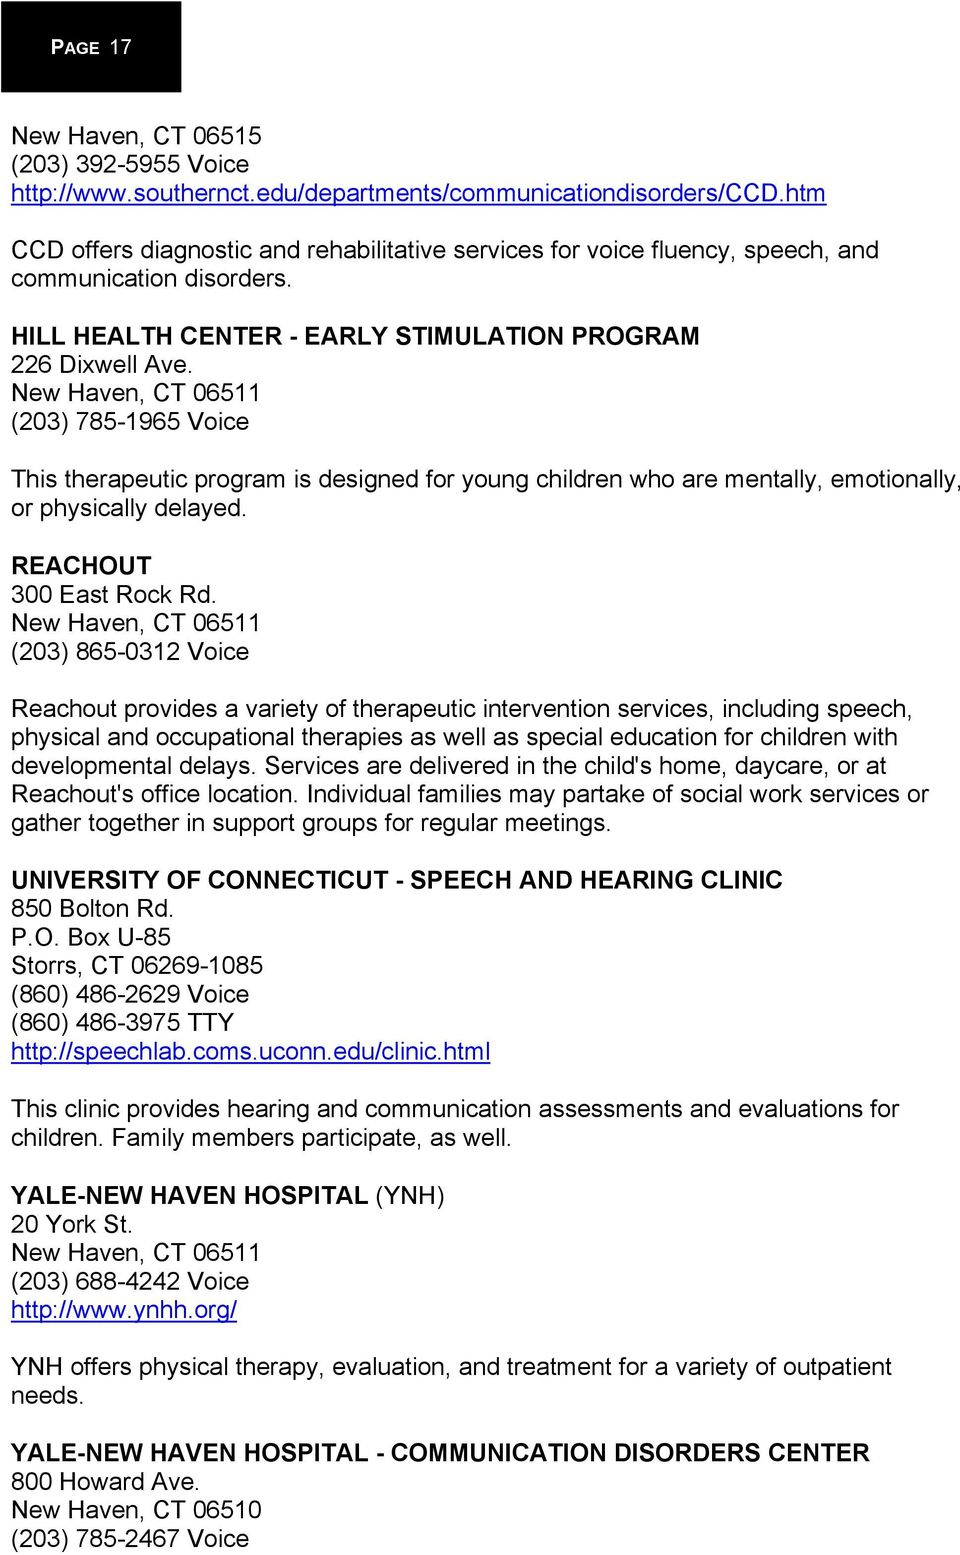 New Haven, CT 06511 (203) 785-1965 Voice This therapeutic program is designed for young children who are mentally, emotionally, or physically delayed. REACHOUT 300 East Rock Rd.